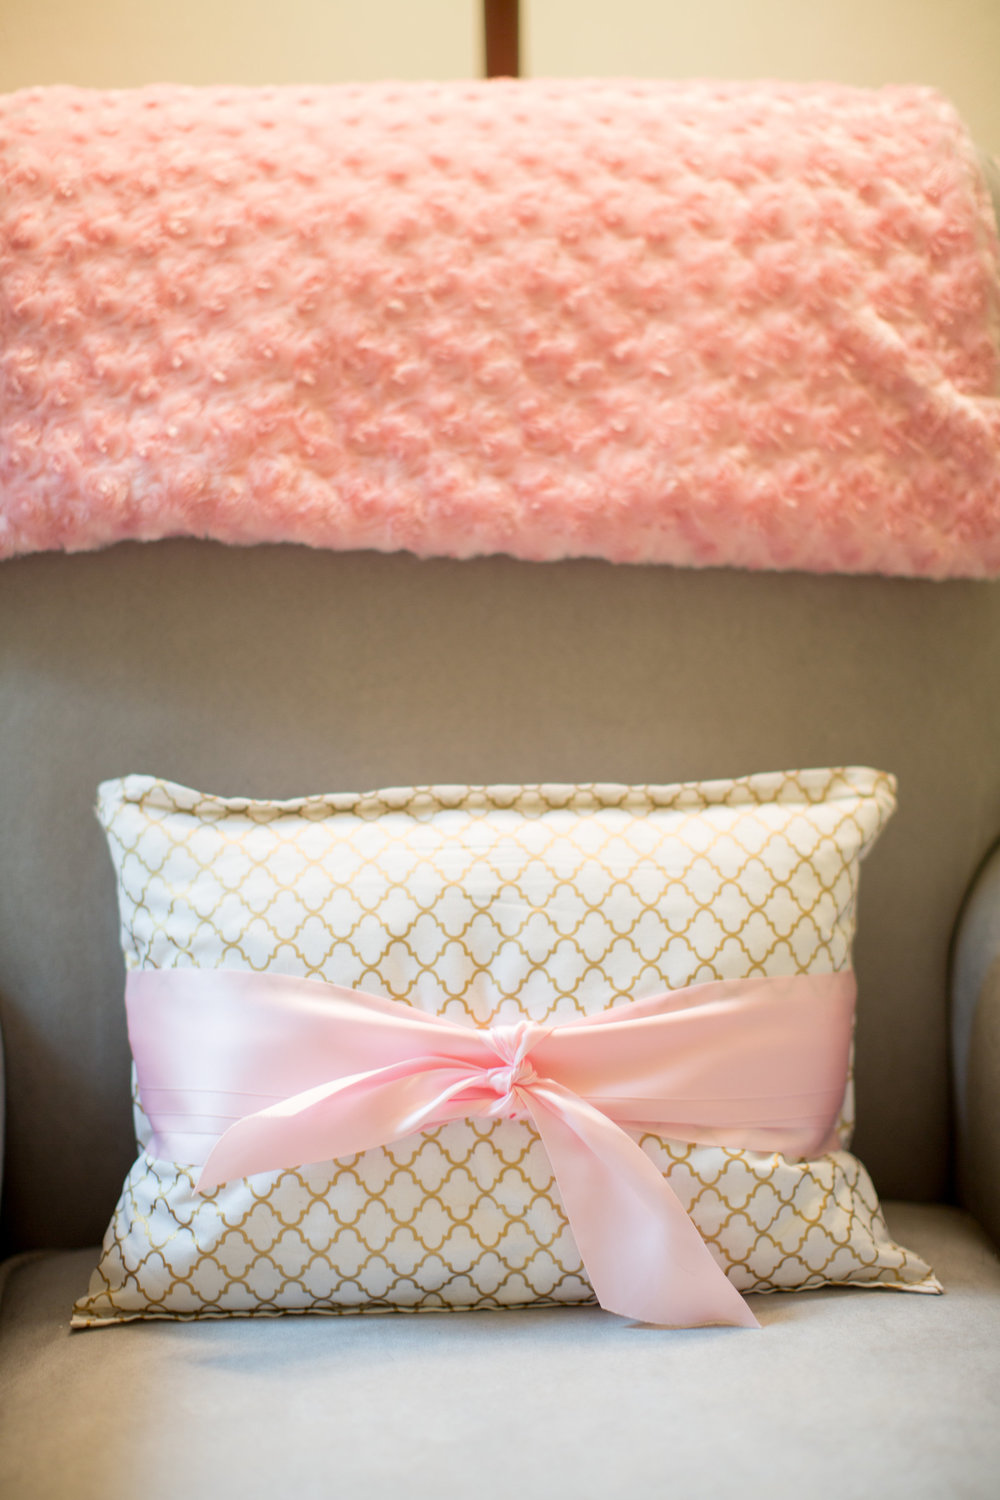 My momma made this beautiful pillow. She got fabric that matched the ribbon valance and finished it off with a sweet little bow. The pink blanket was made for me and baby by my aunt Linda. She made it big enough so we could cuddle up together. I love it.